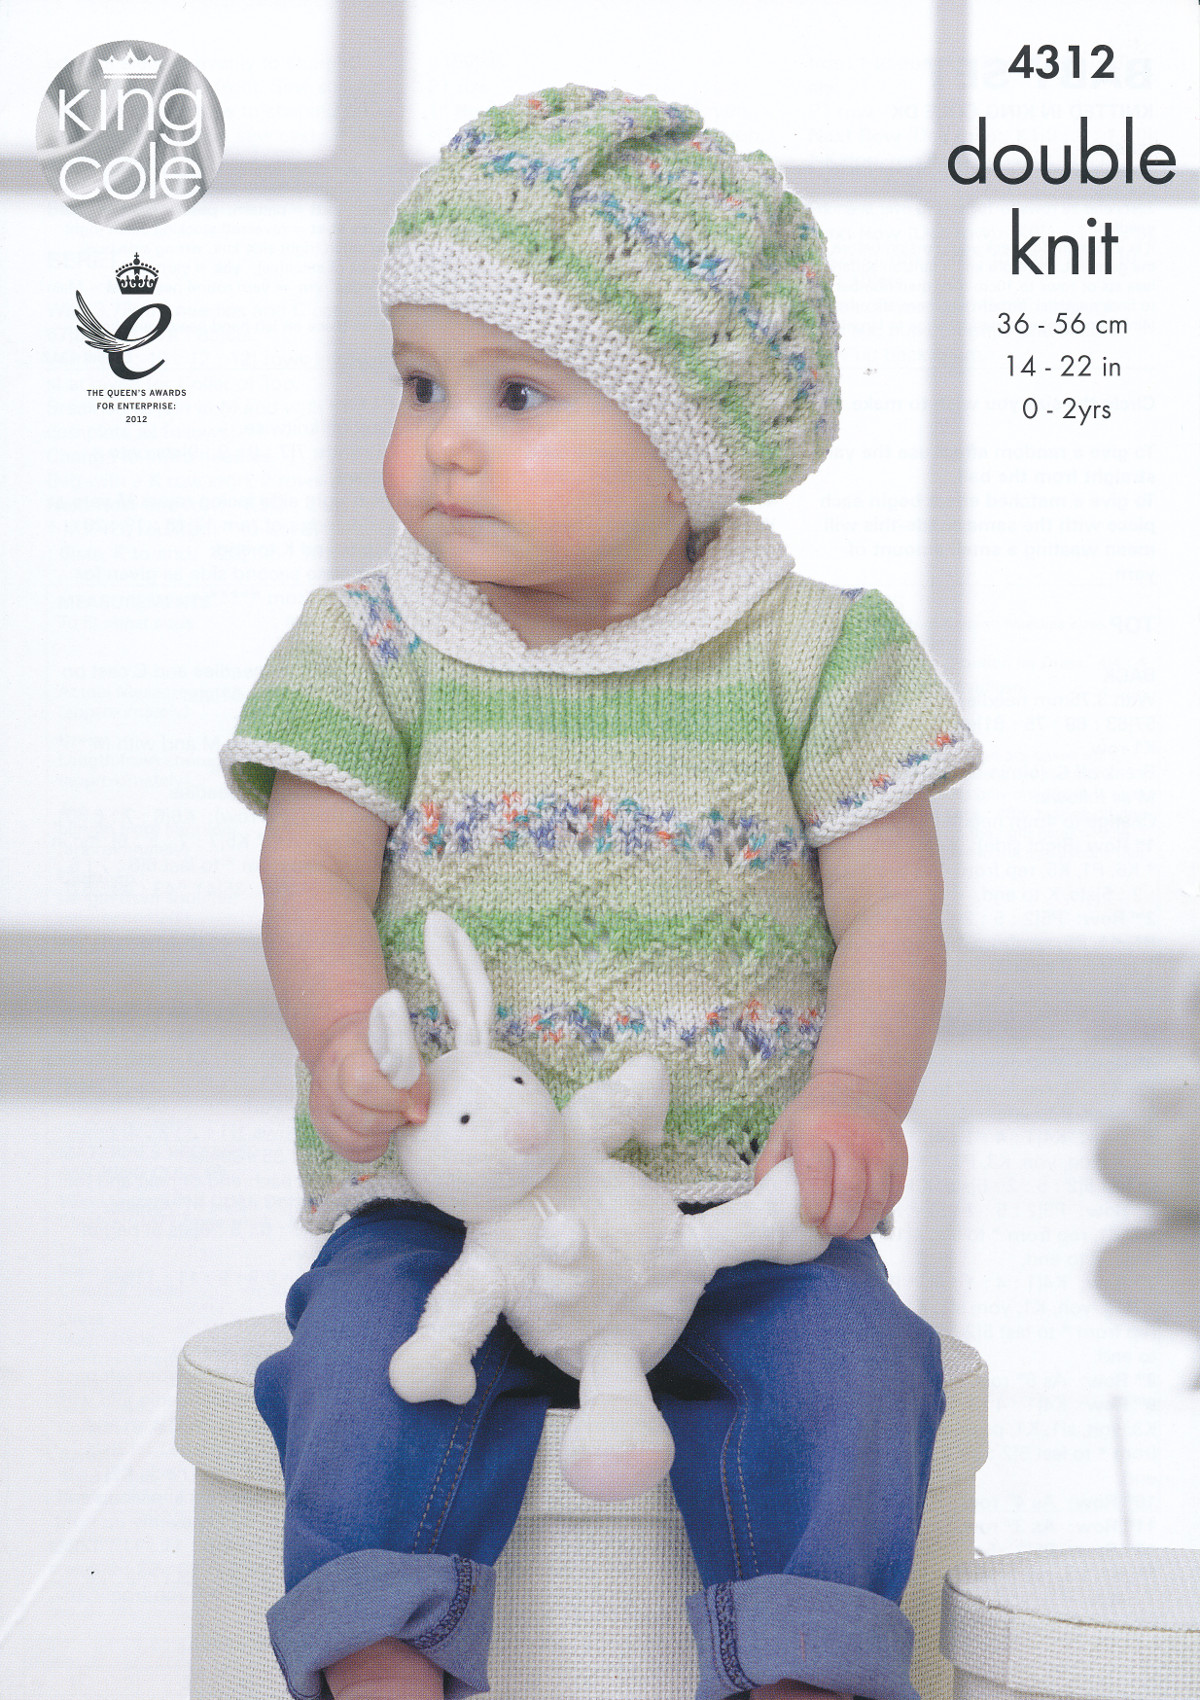 Baby Double Knitting Patterns : King Cole Double Knitting Pattern Lace Effect Top Dress Cardigan Beret Set 43...